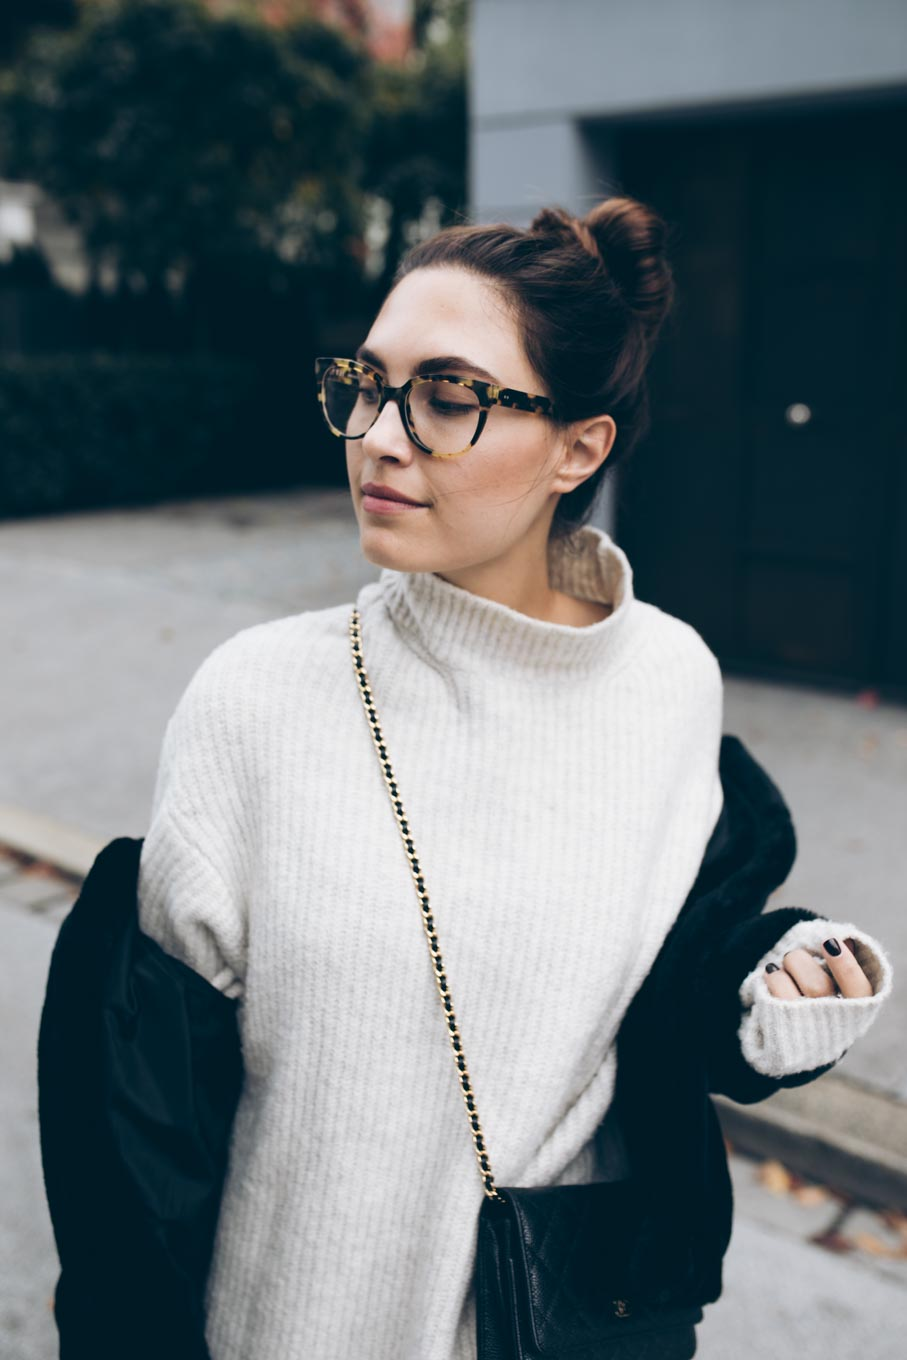 You rock my life: Zara Faux Fur Jacket, Oversized Jumper, Zara Boots, VIU The Beauty glasses, Aigner Lea Bag, Chanel Walltet on chain | Outfit For Fall